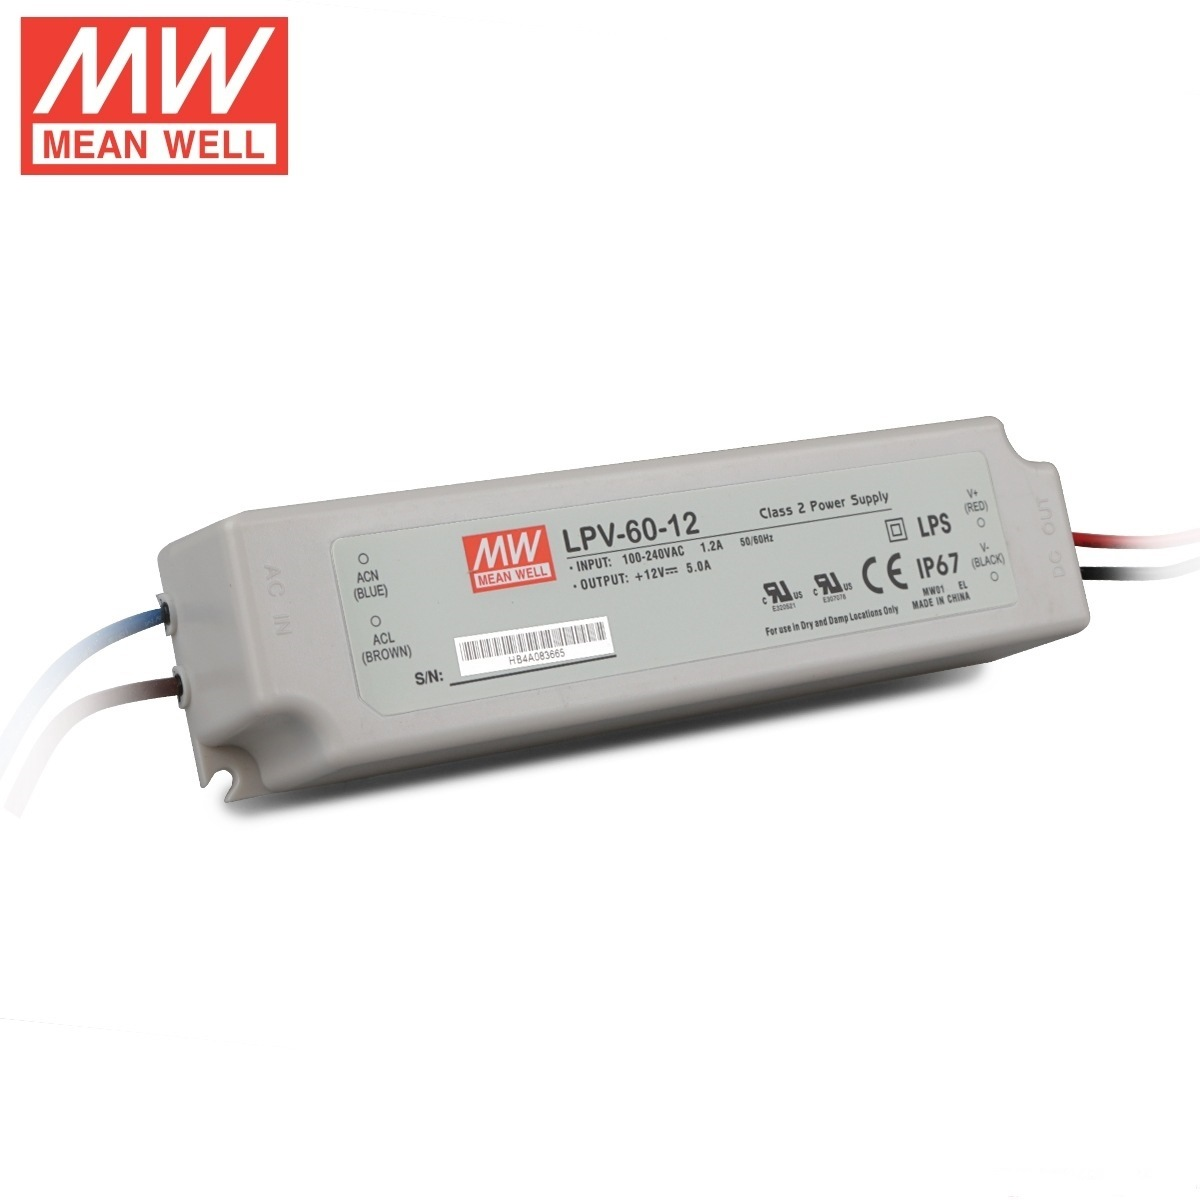 Waterproof Meanwell Lpv-60 12V IP67 LED Switching Power Supply